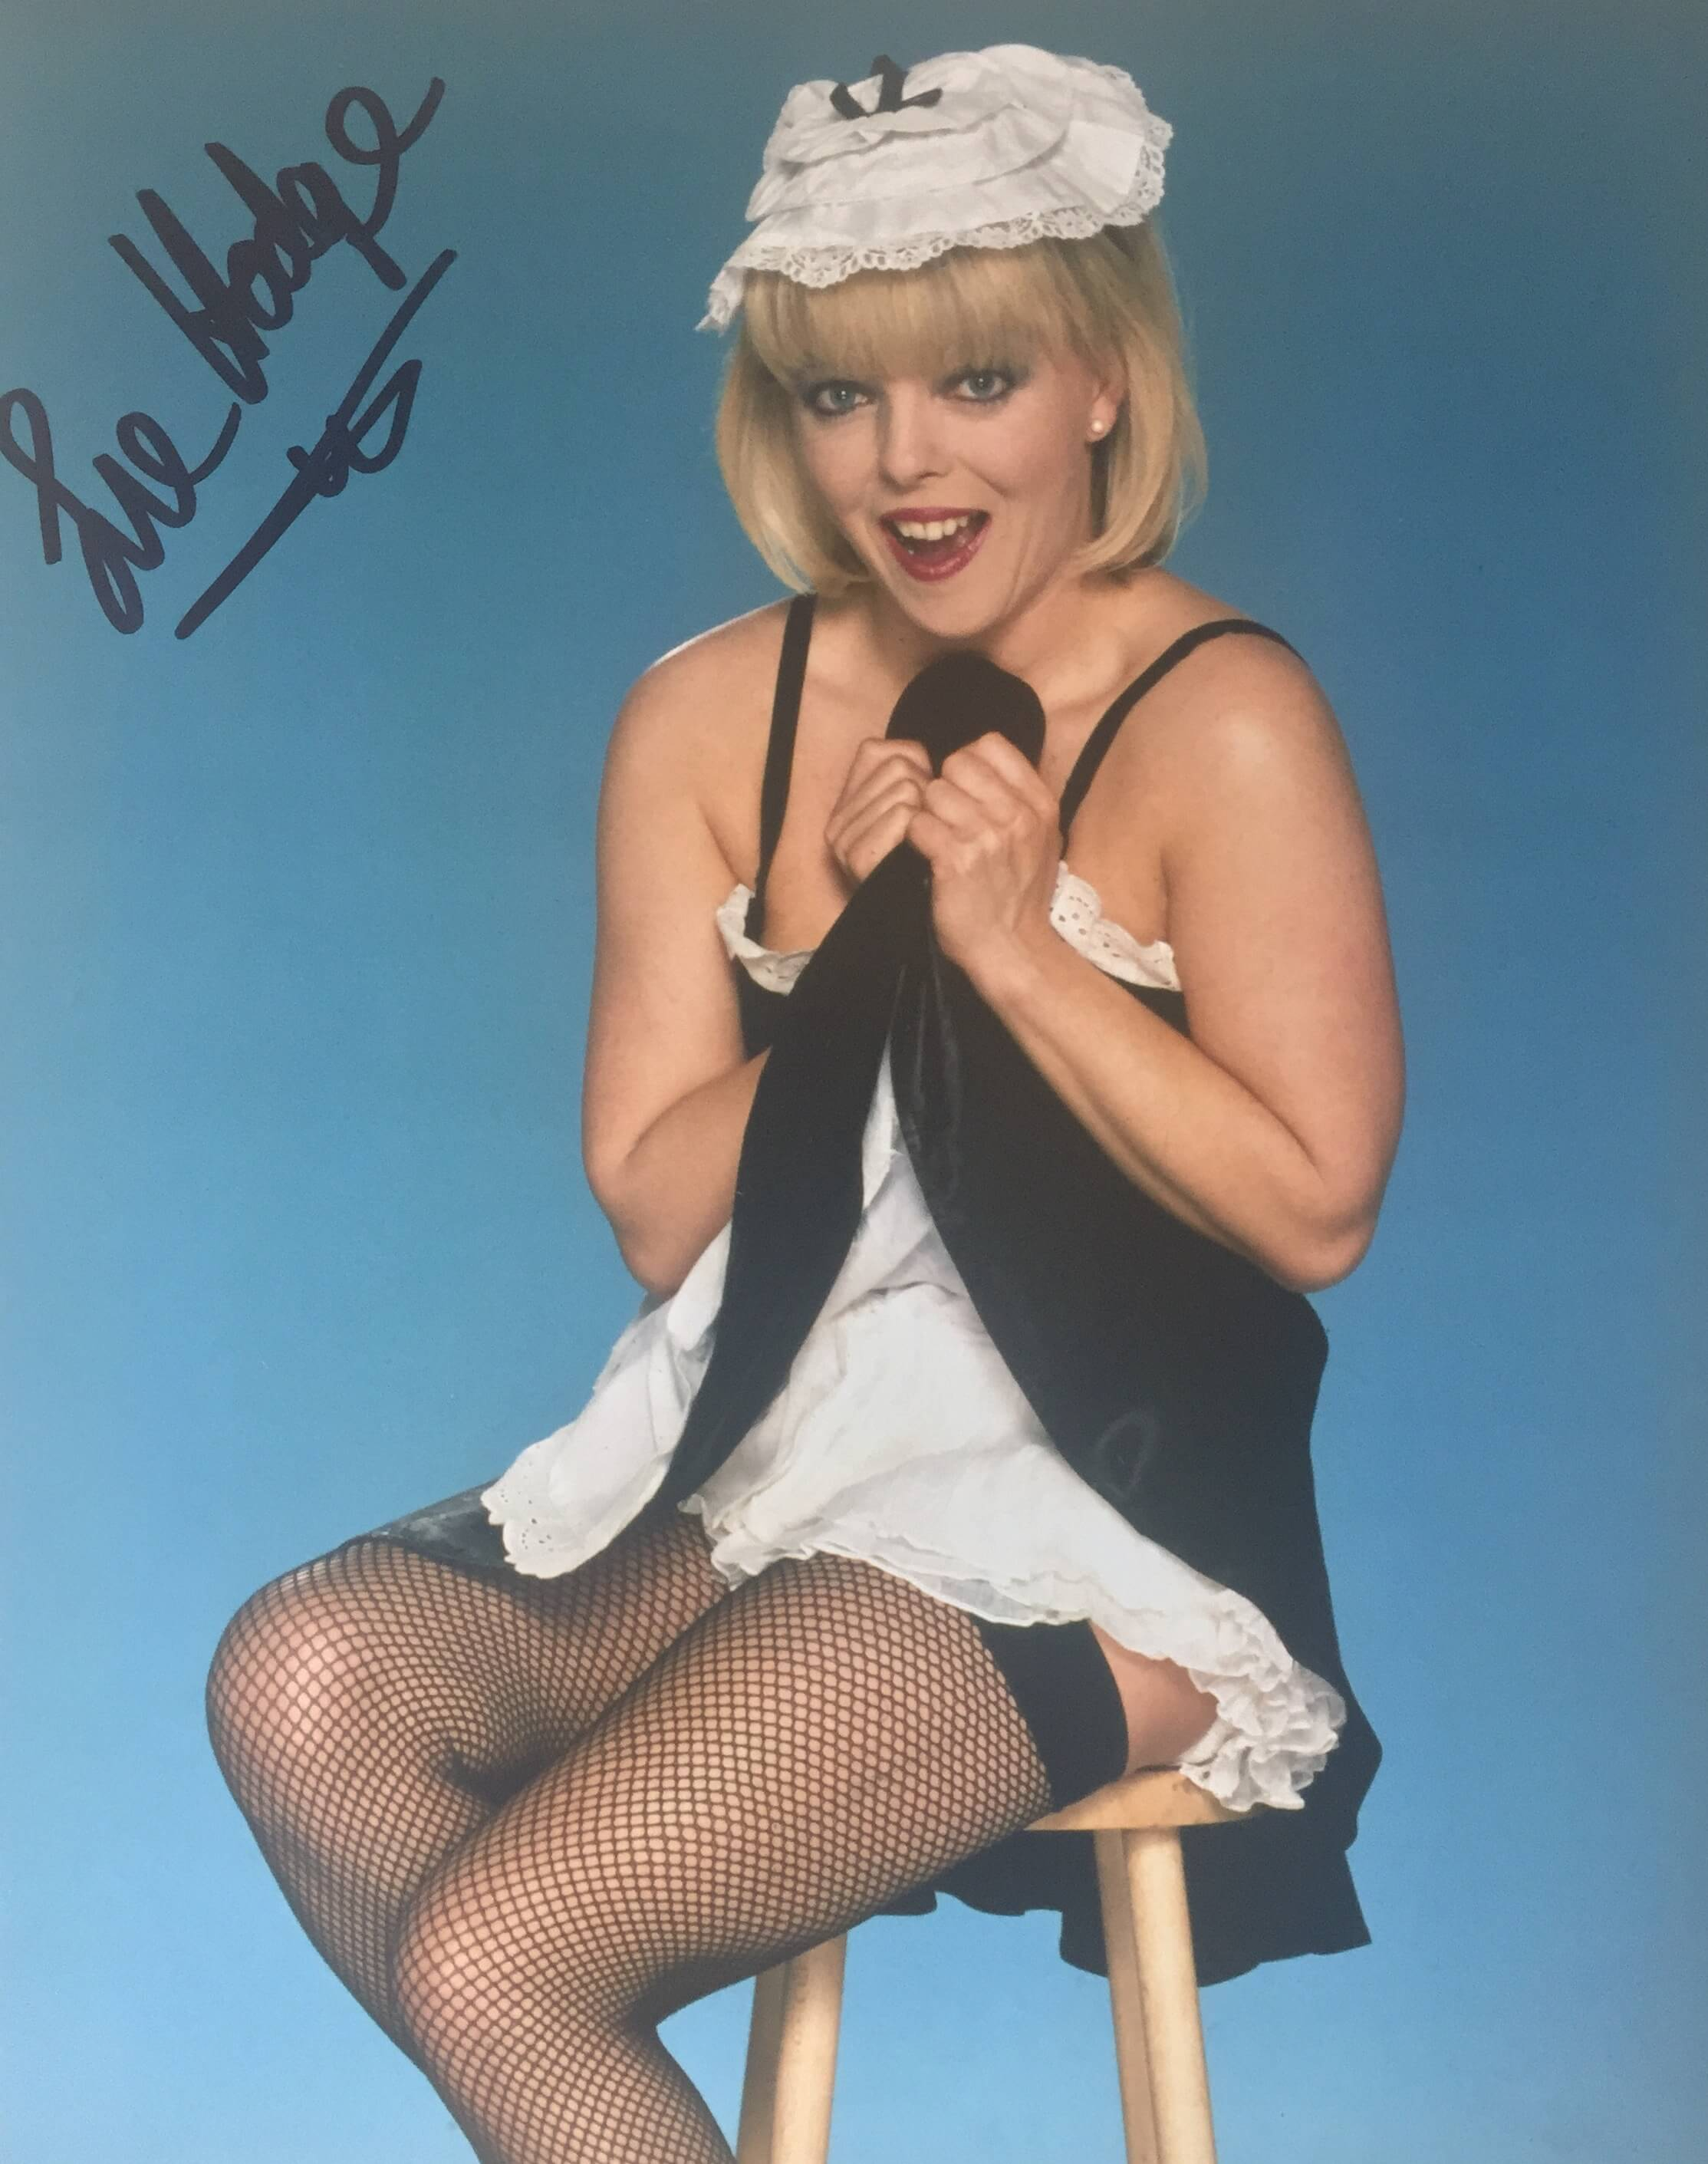 Sue Hodge Hand Signed 10x8 Photo